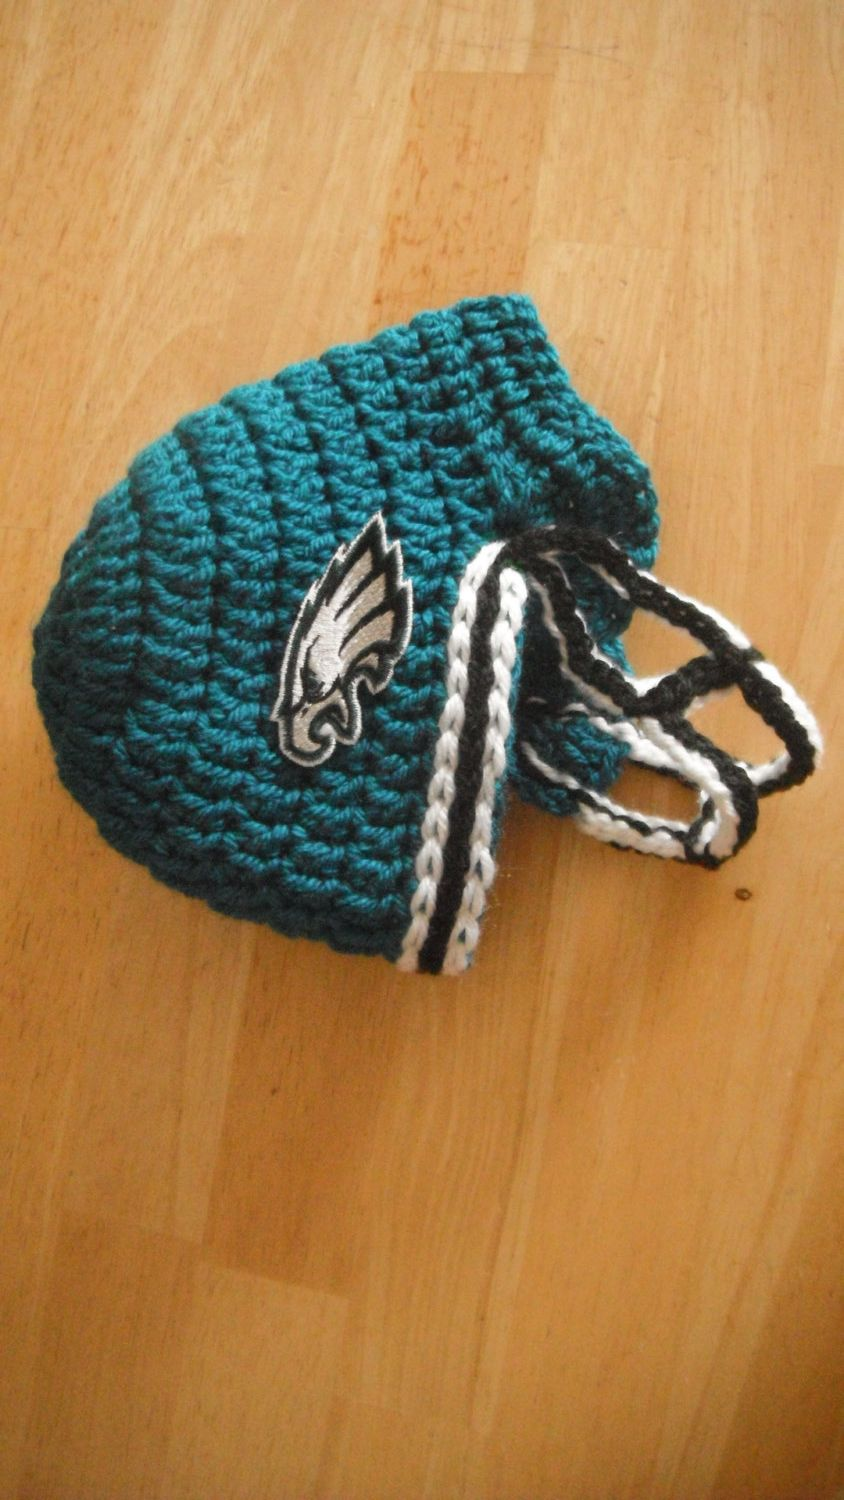 Crochet Philadelphia eagles helmet Baby newborn by lilianda, $34.99 ...